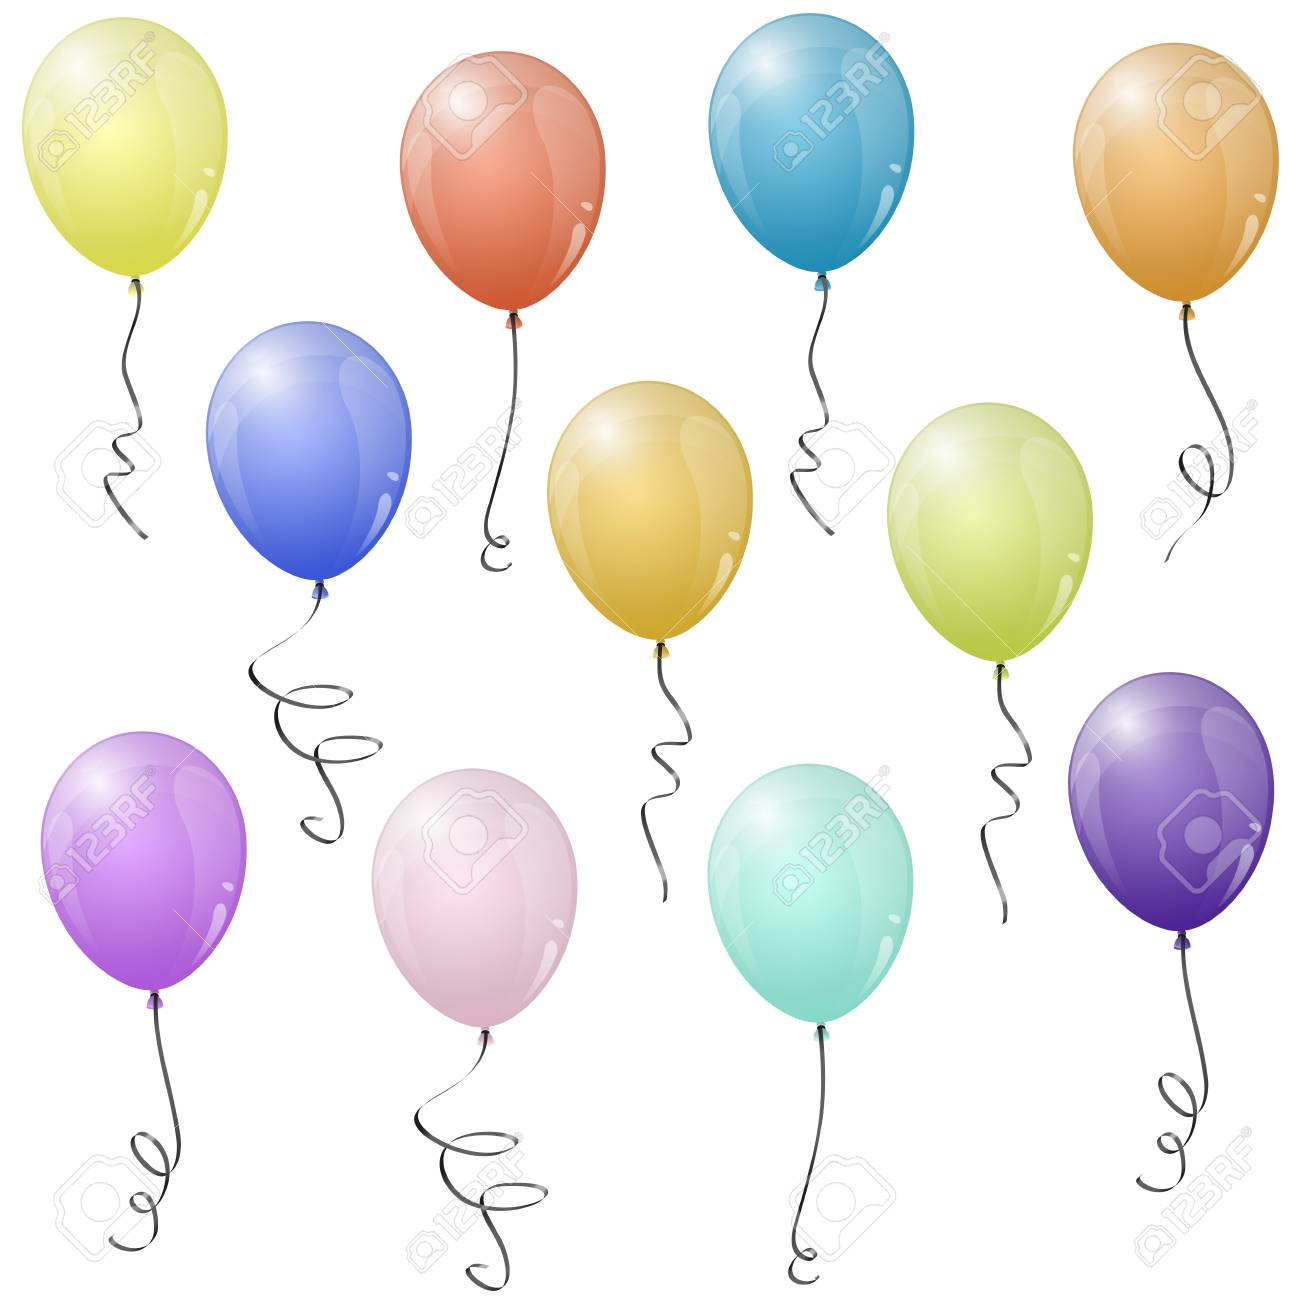 hight resolution of collection of eleven different colored flying party balloons stock vector 76355075